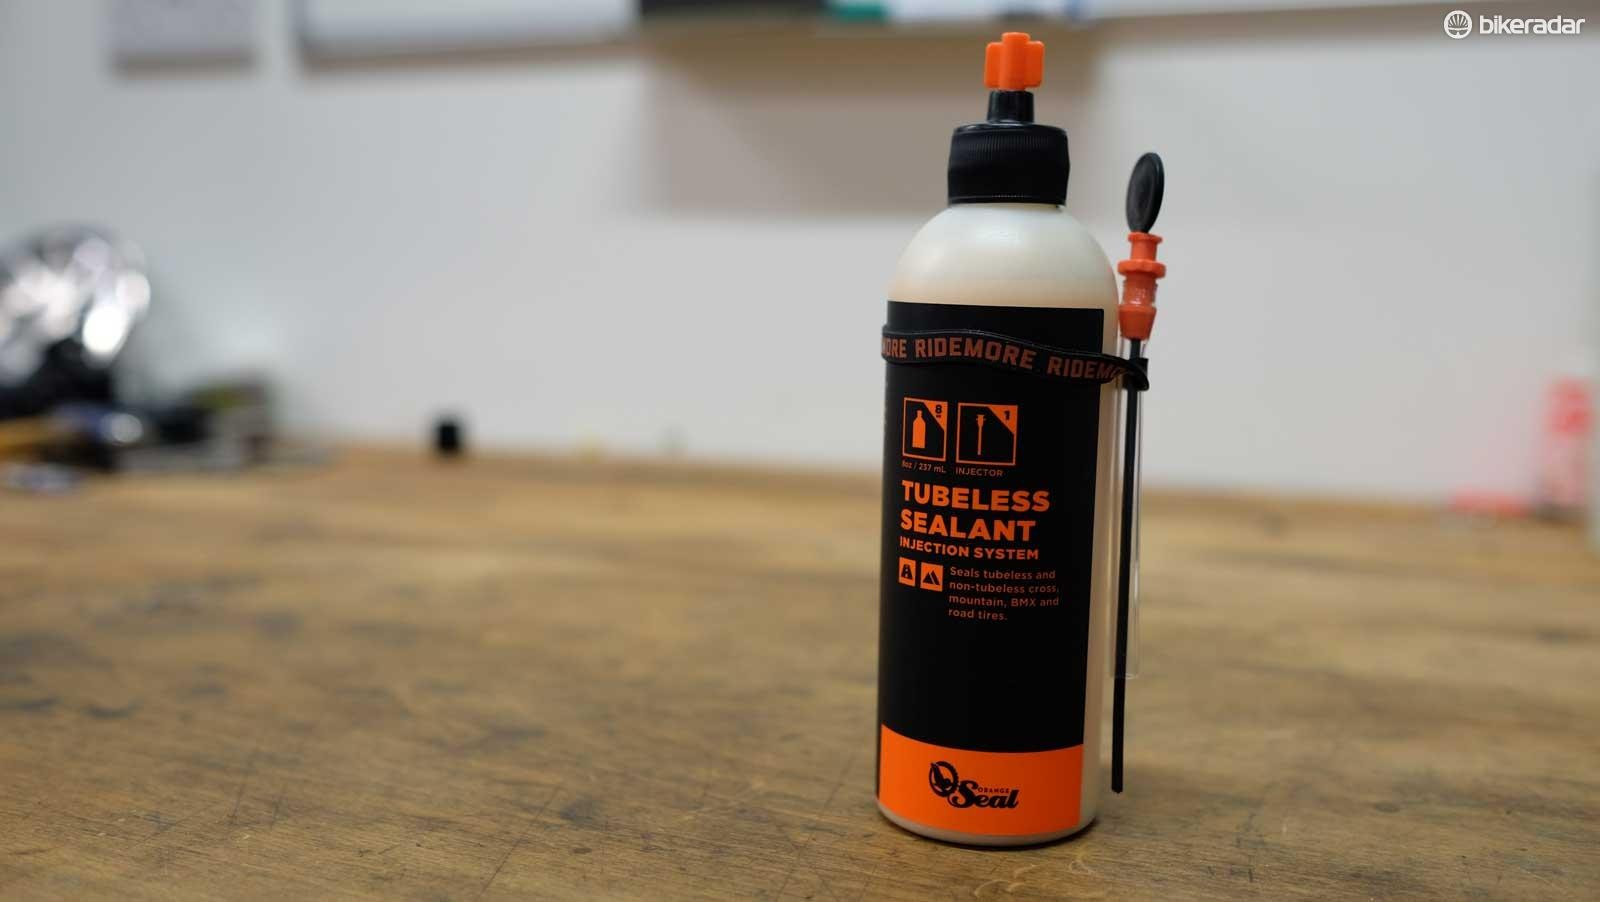 We've had good luck using Orange Seal on road tubeless tires